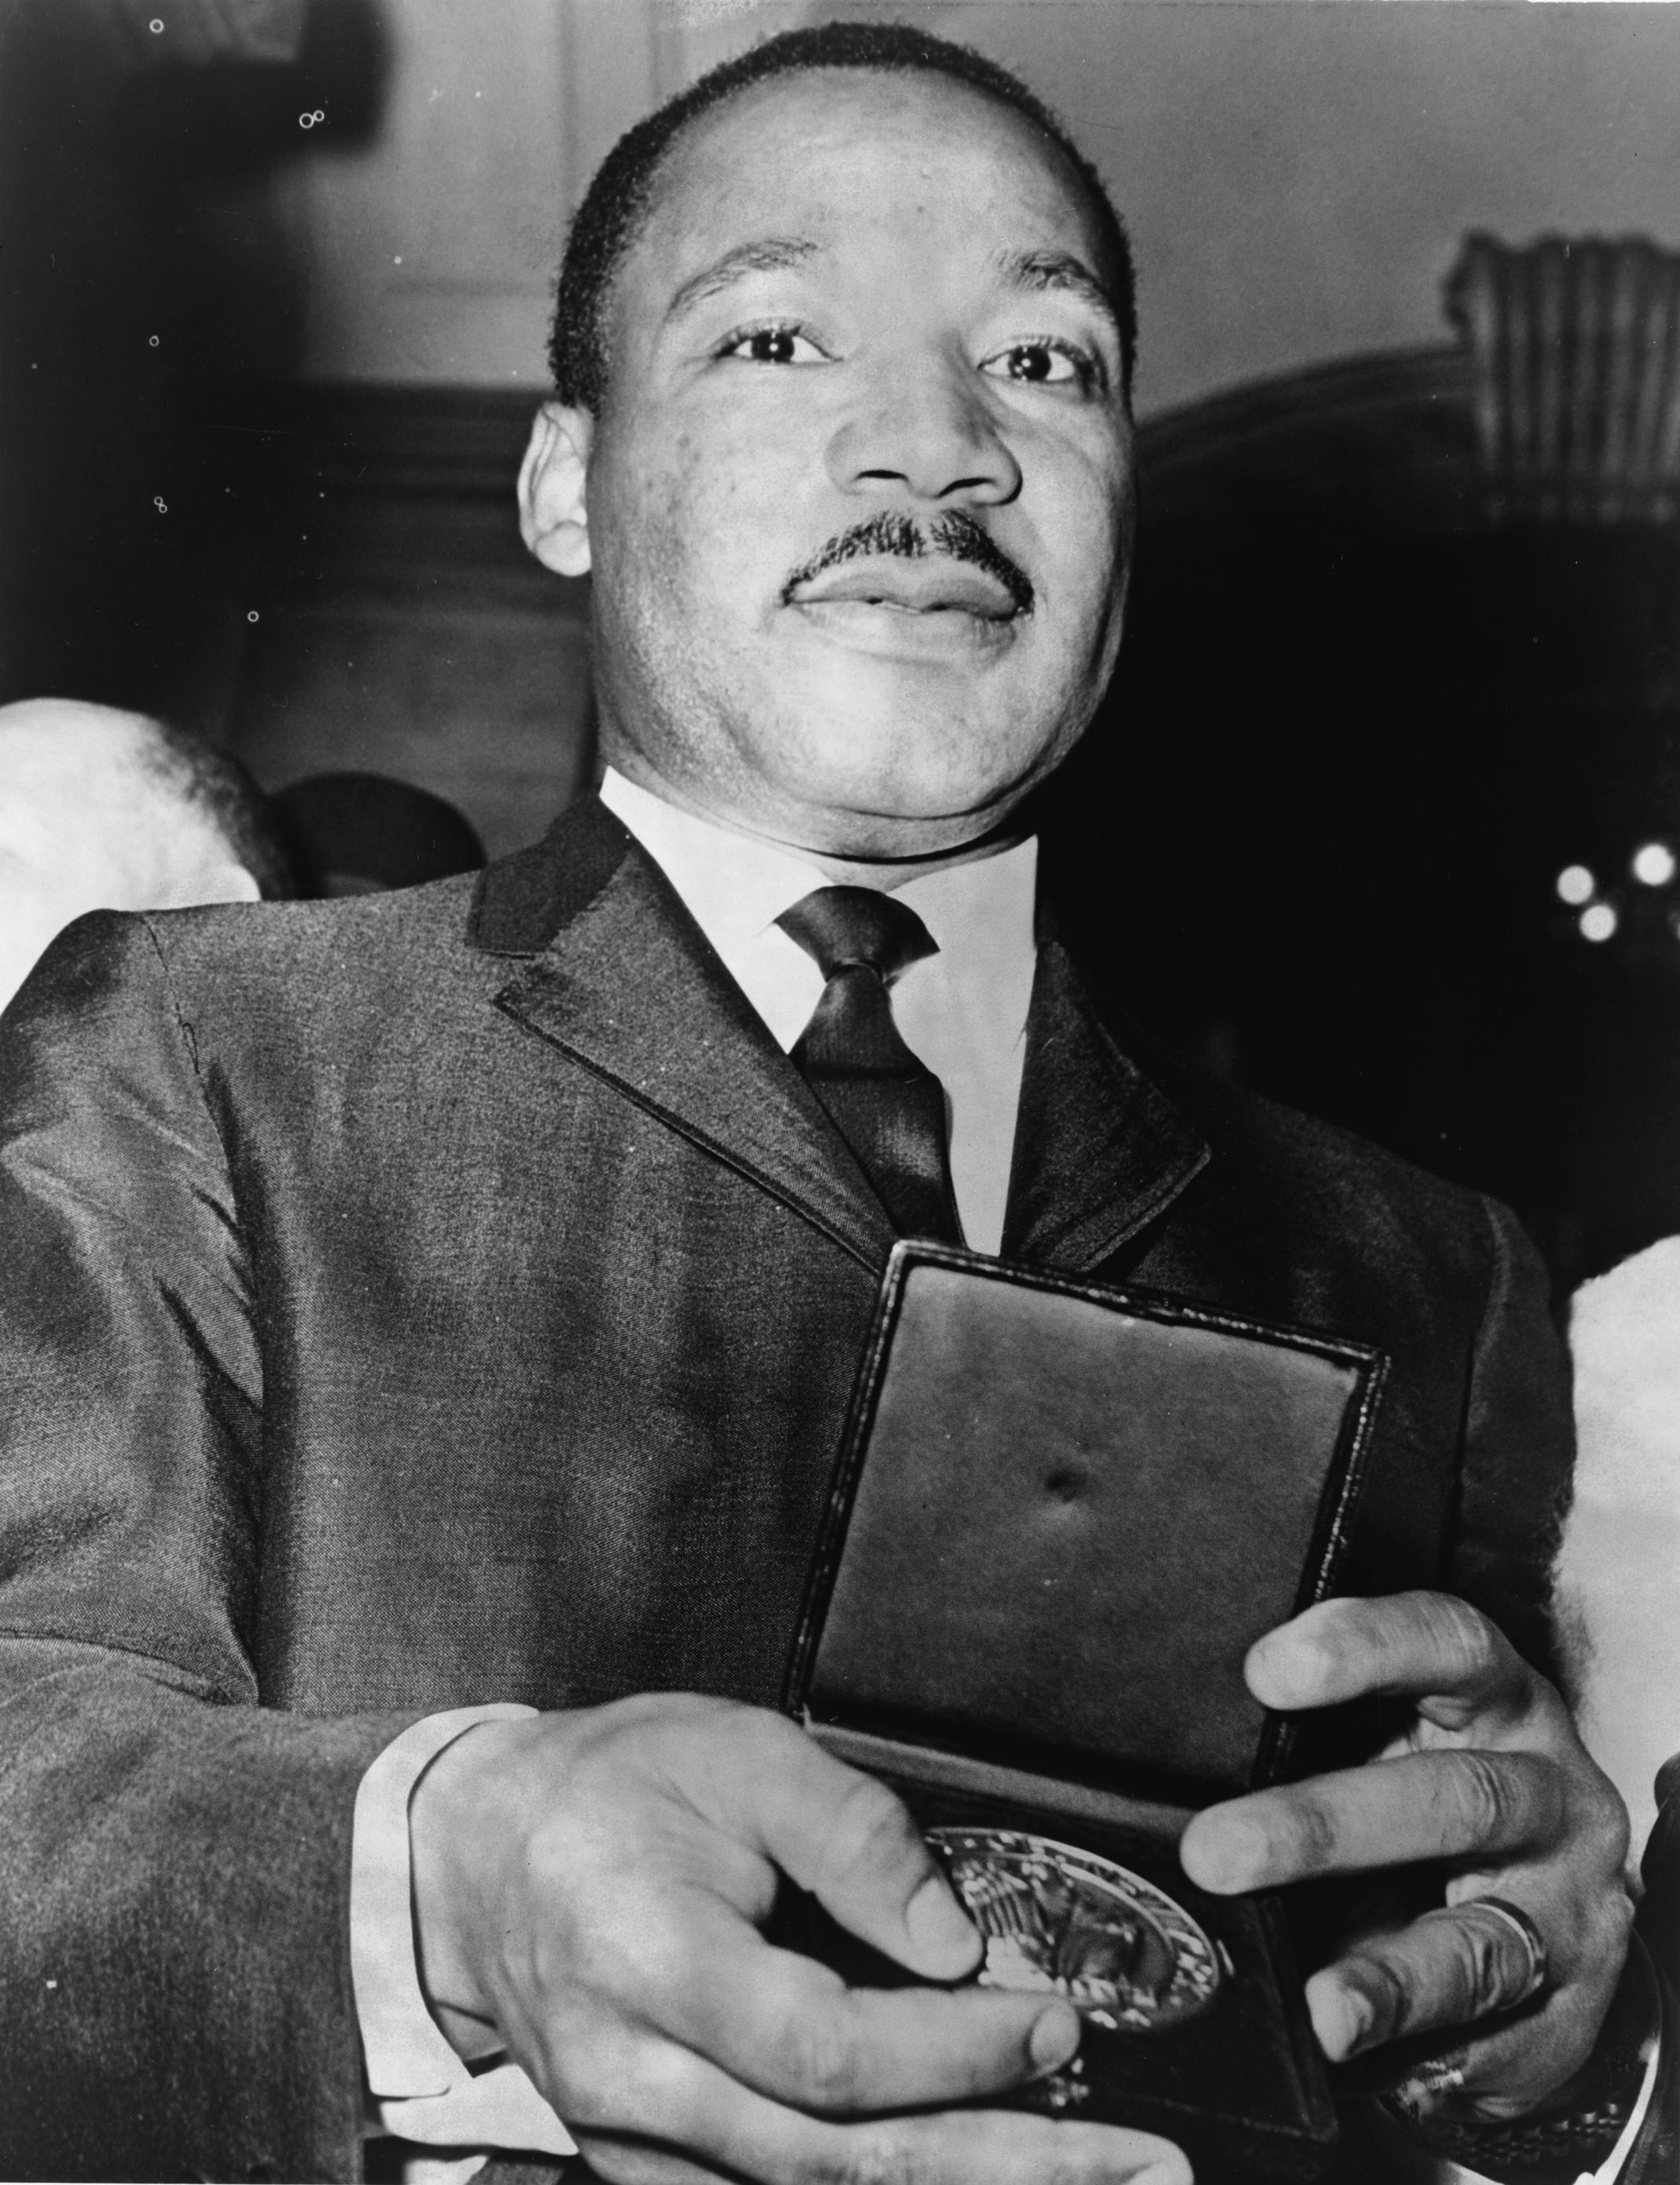 Martin_Luther_King_Jr_with_medallion_NYWTS.jpg